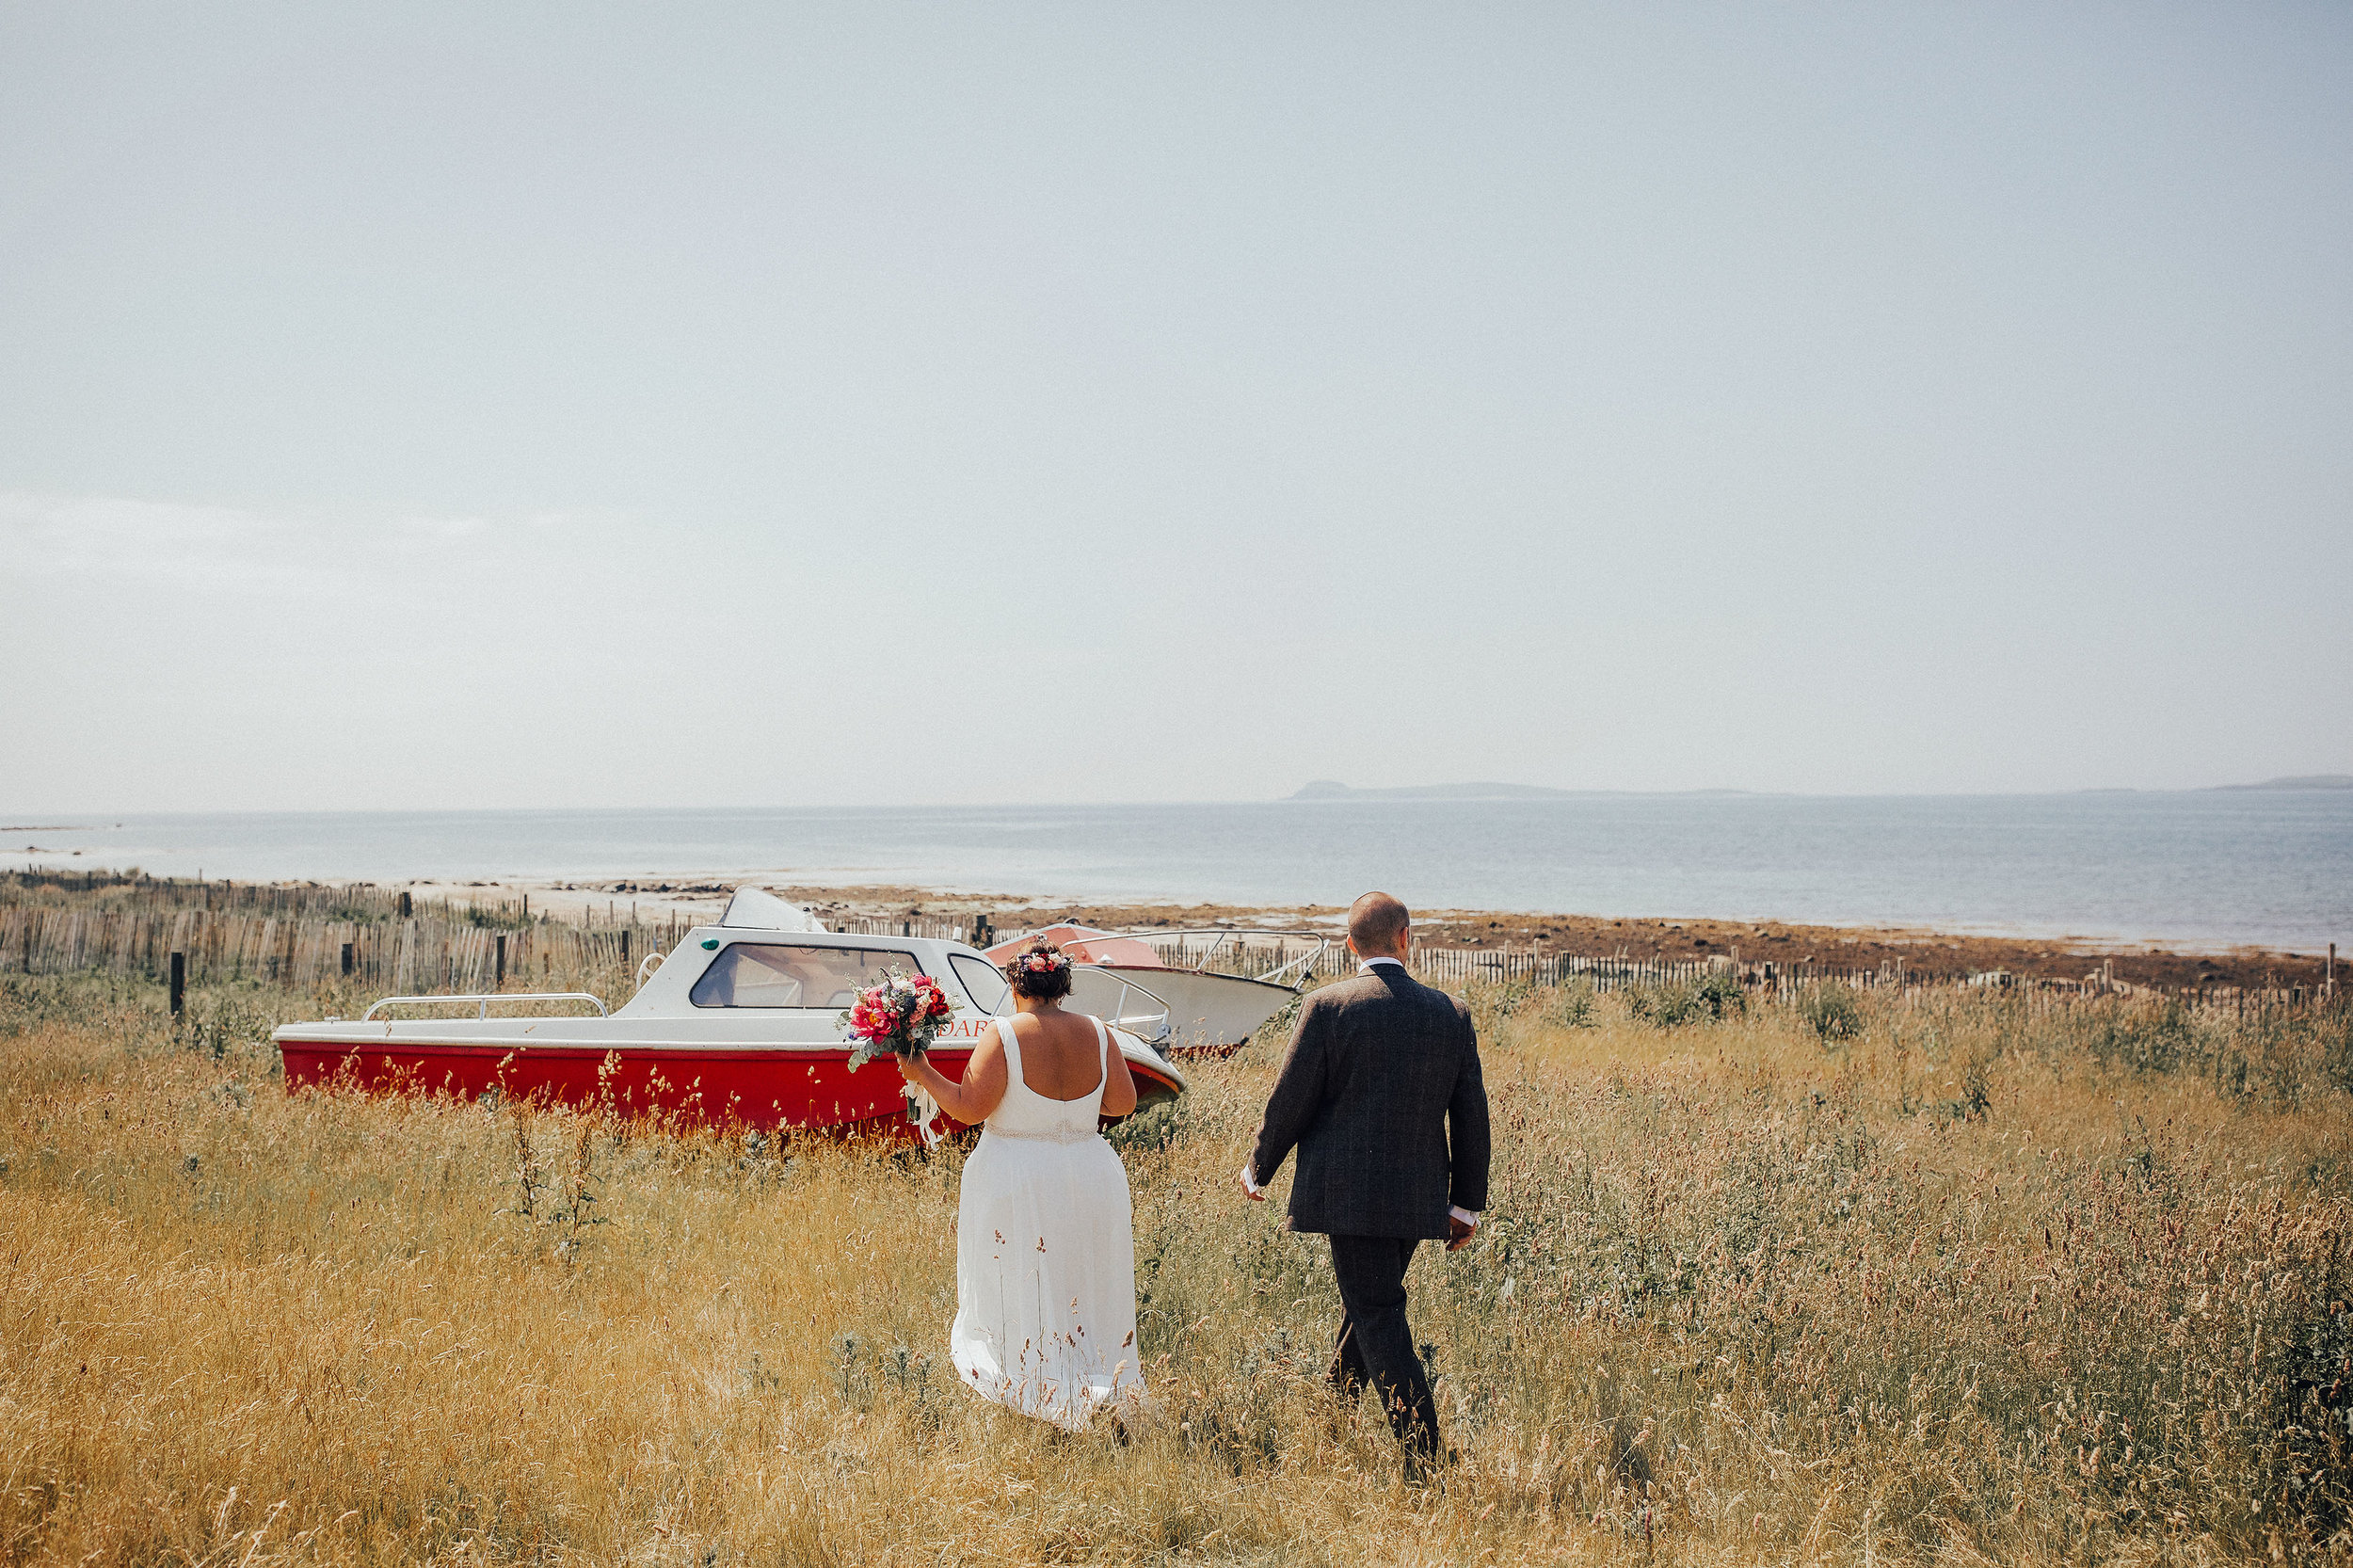 SCOTTISH_ELOPEMENT_PHOTOGRAPHER_PJ_PHILLIPS_PHOTOGRAPHY_96.jpg